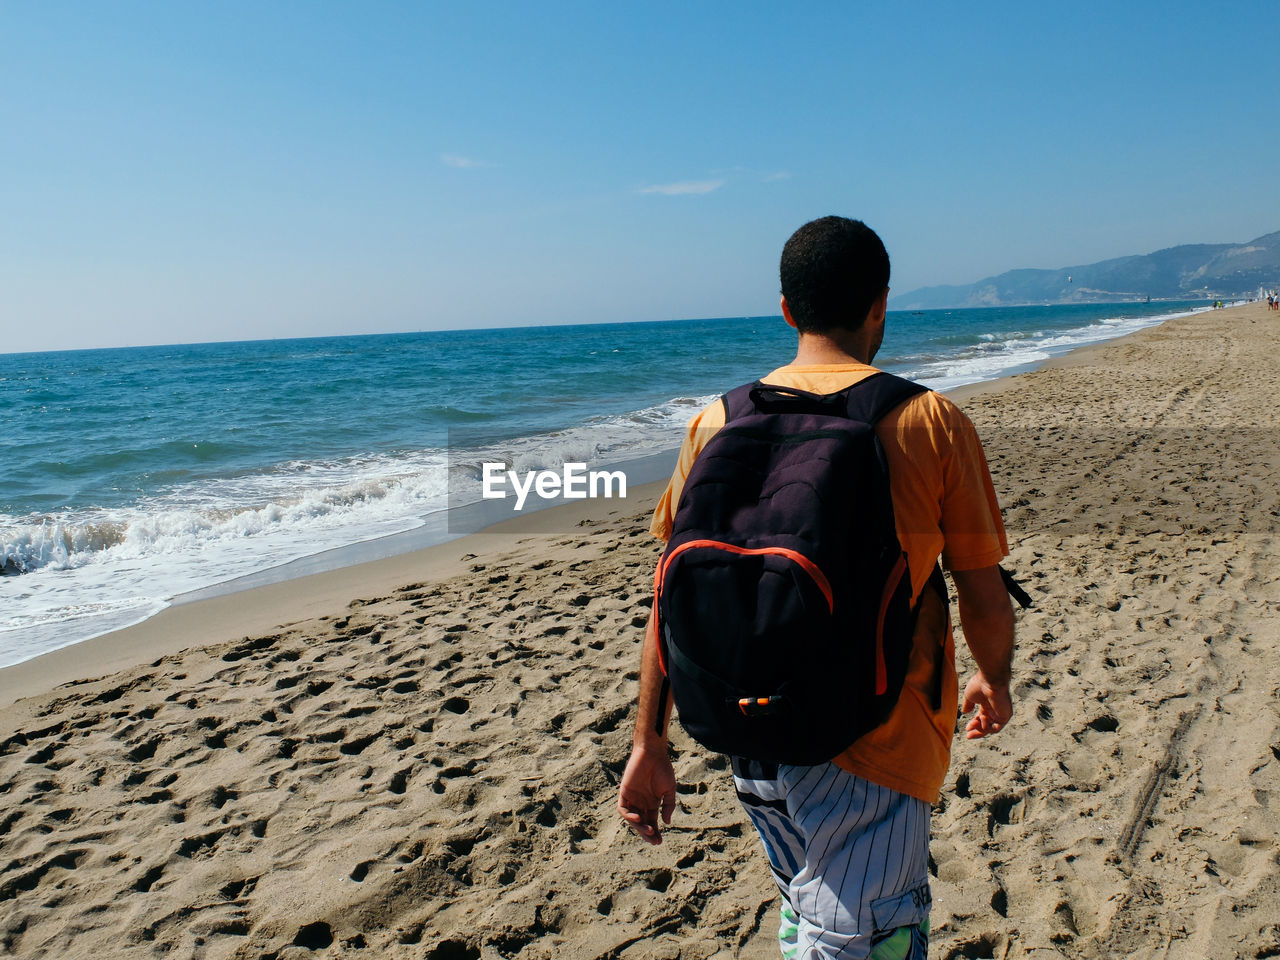 Rear view of man with backpack walking at beach against blue sky during sunny day